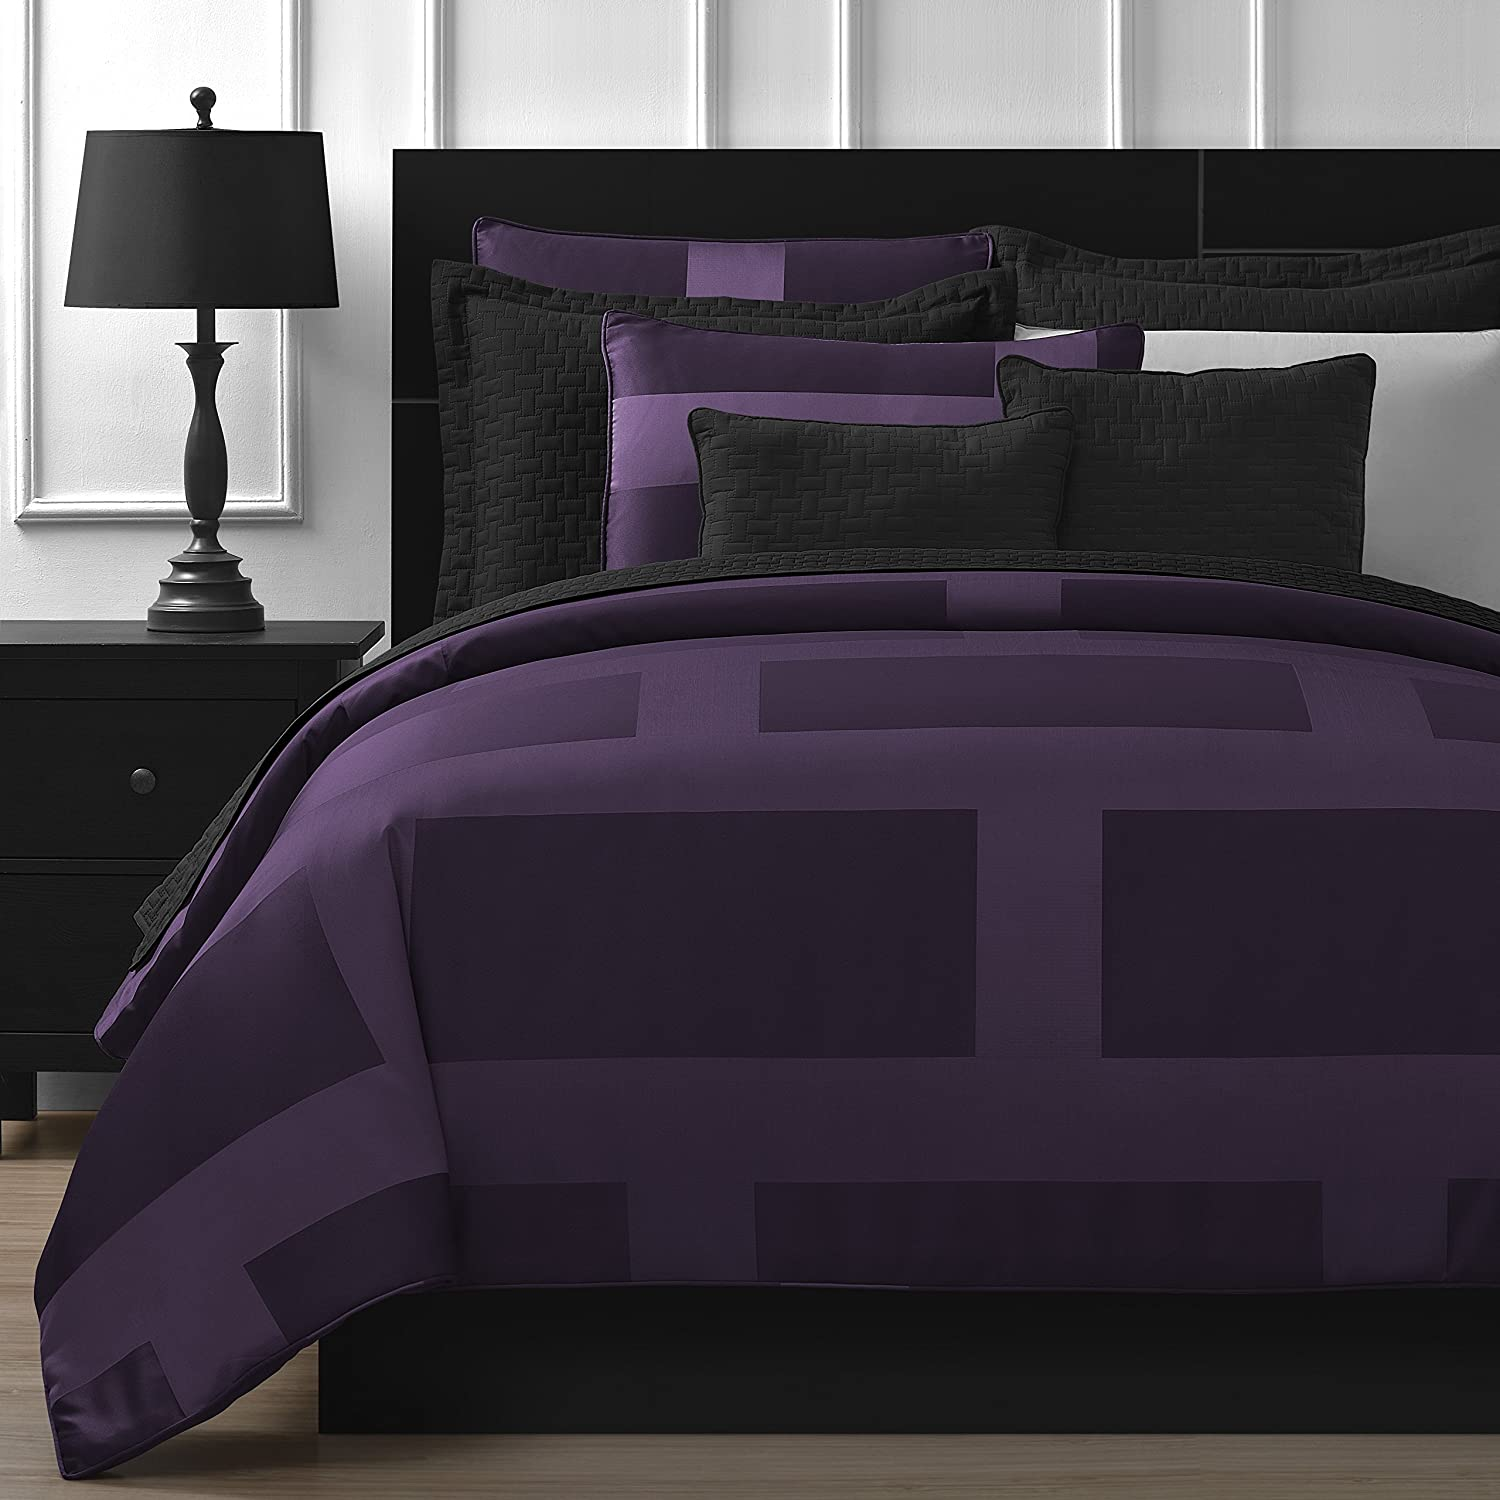 Comfy Bedding Frame Jacquard Microfiber King 5-piece Comforter Set, Plum